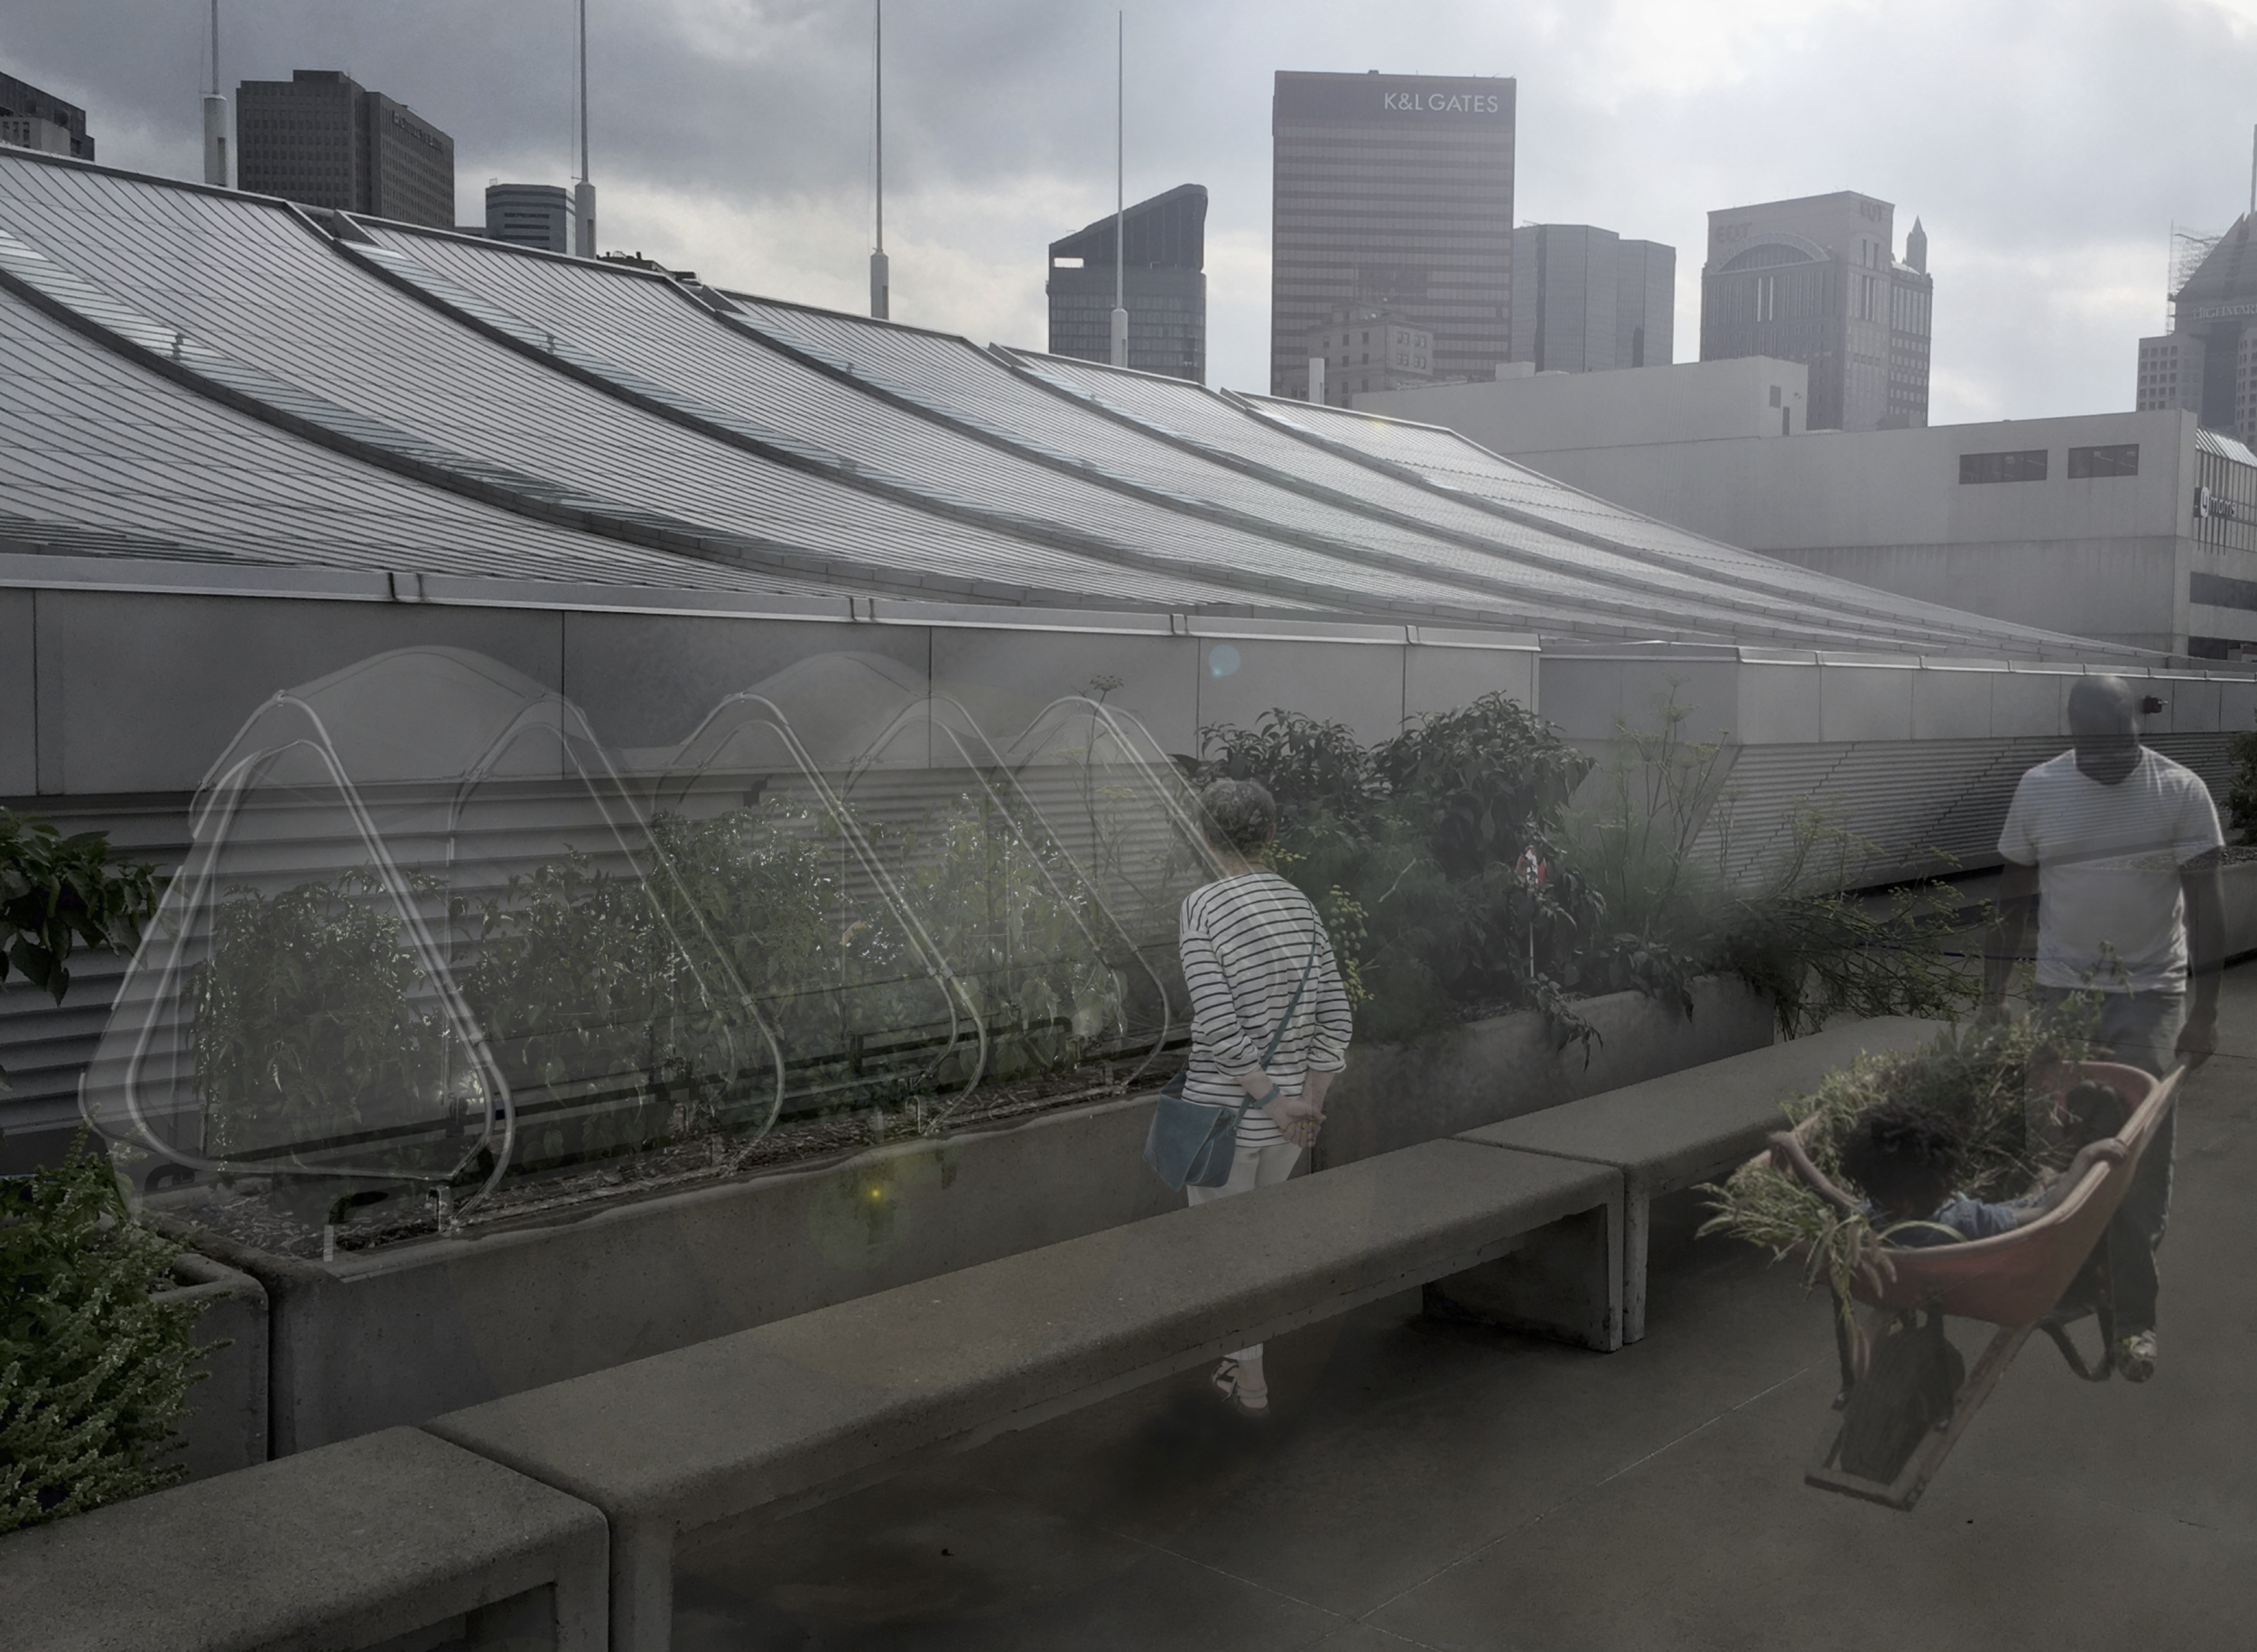 Echo Hoop House - Team: C. Anderegg, Z. Chen, M. Powell, O. Tousignant, S. WangStudioFall 2016